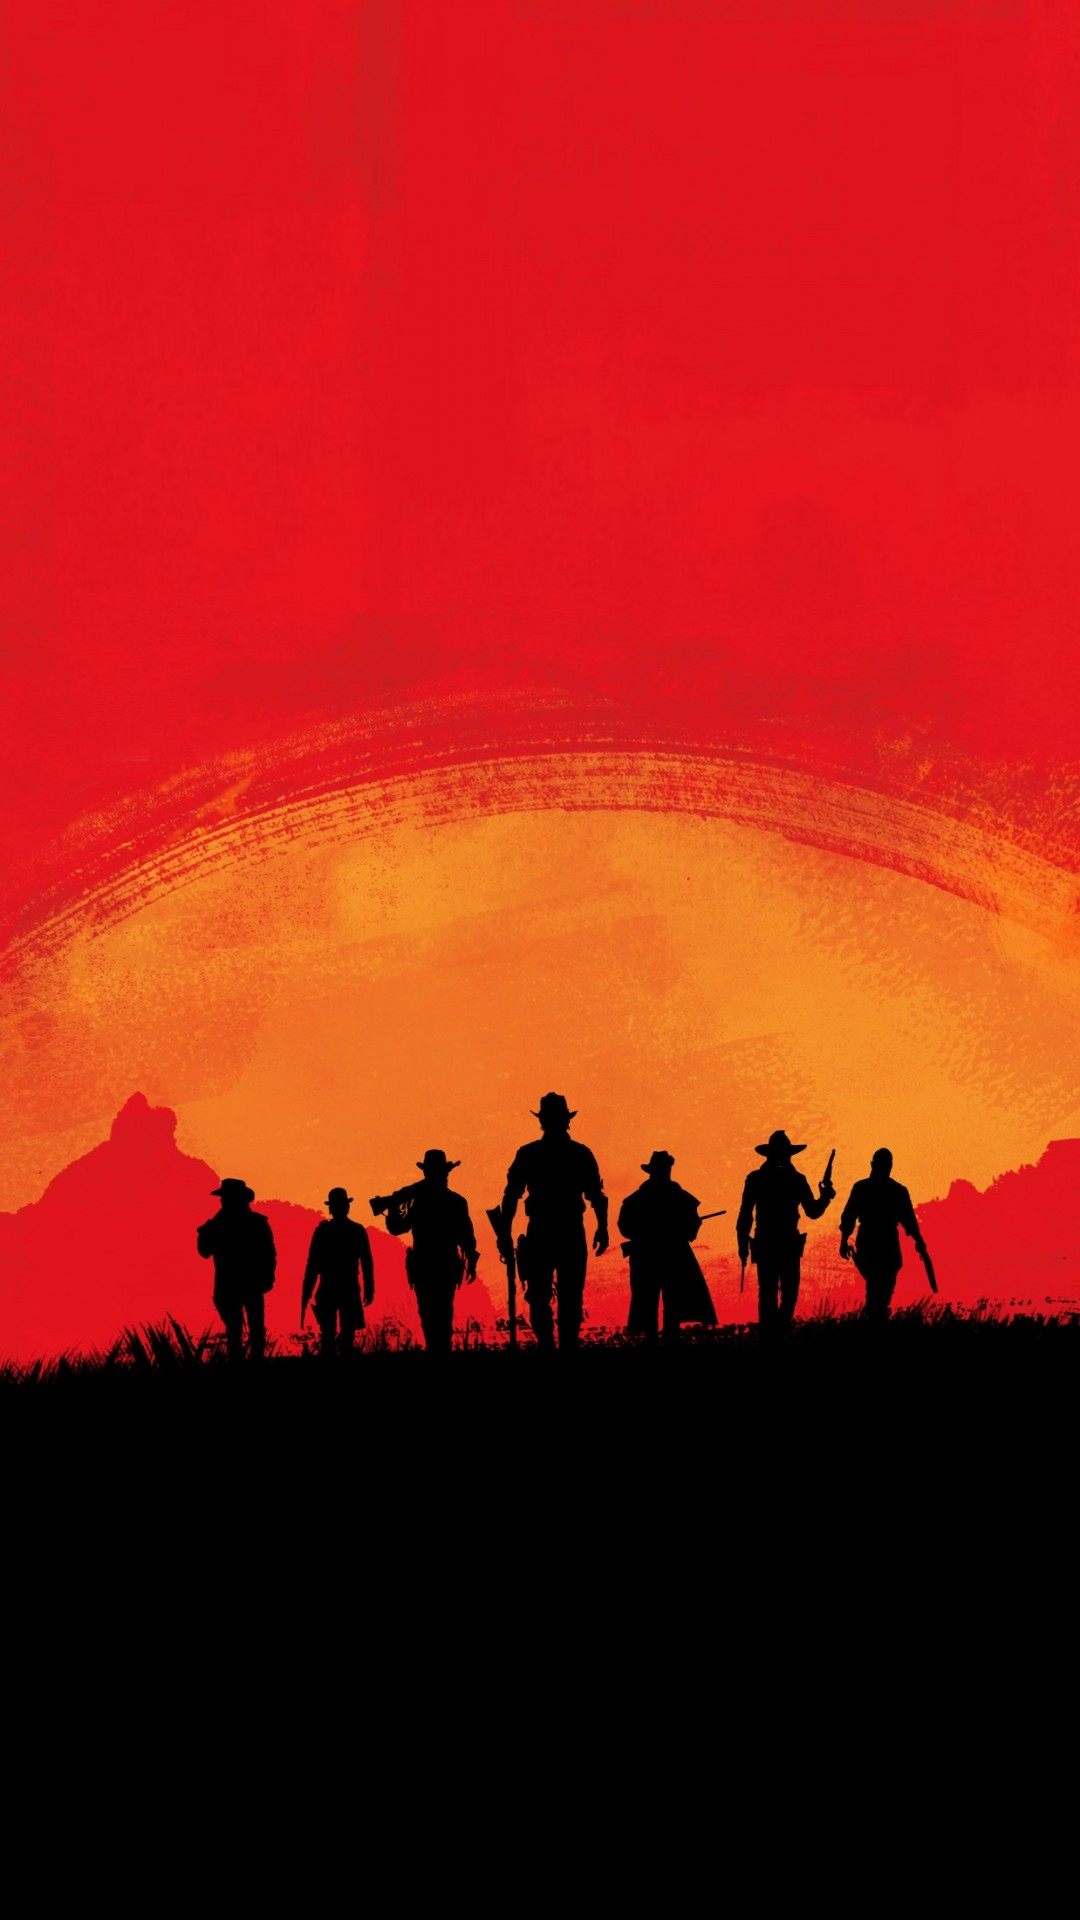 Wallpaper Red Dead Redemption 2 Rockstar Ps4 Xbox One Games 12262